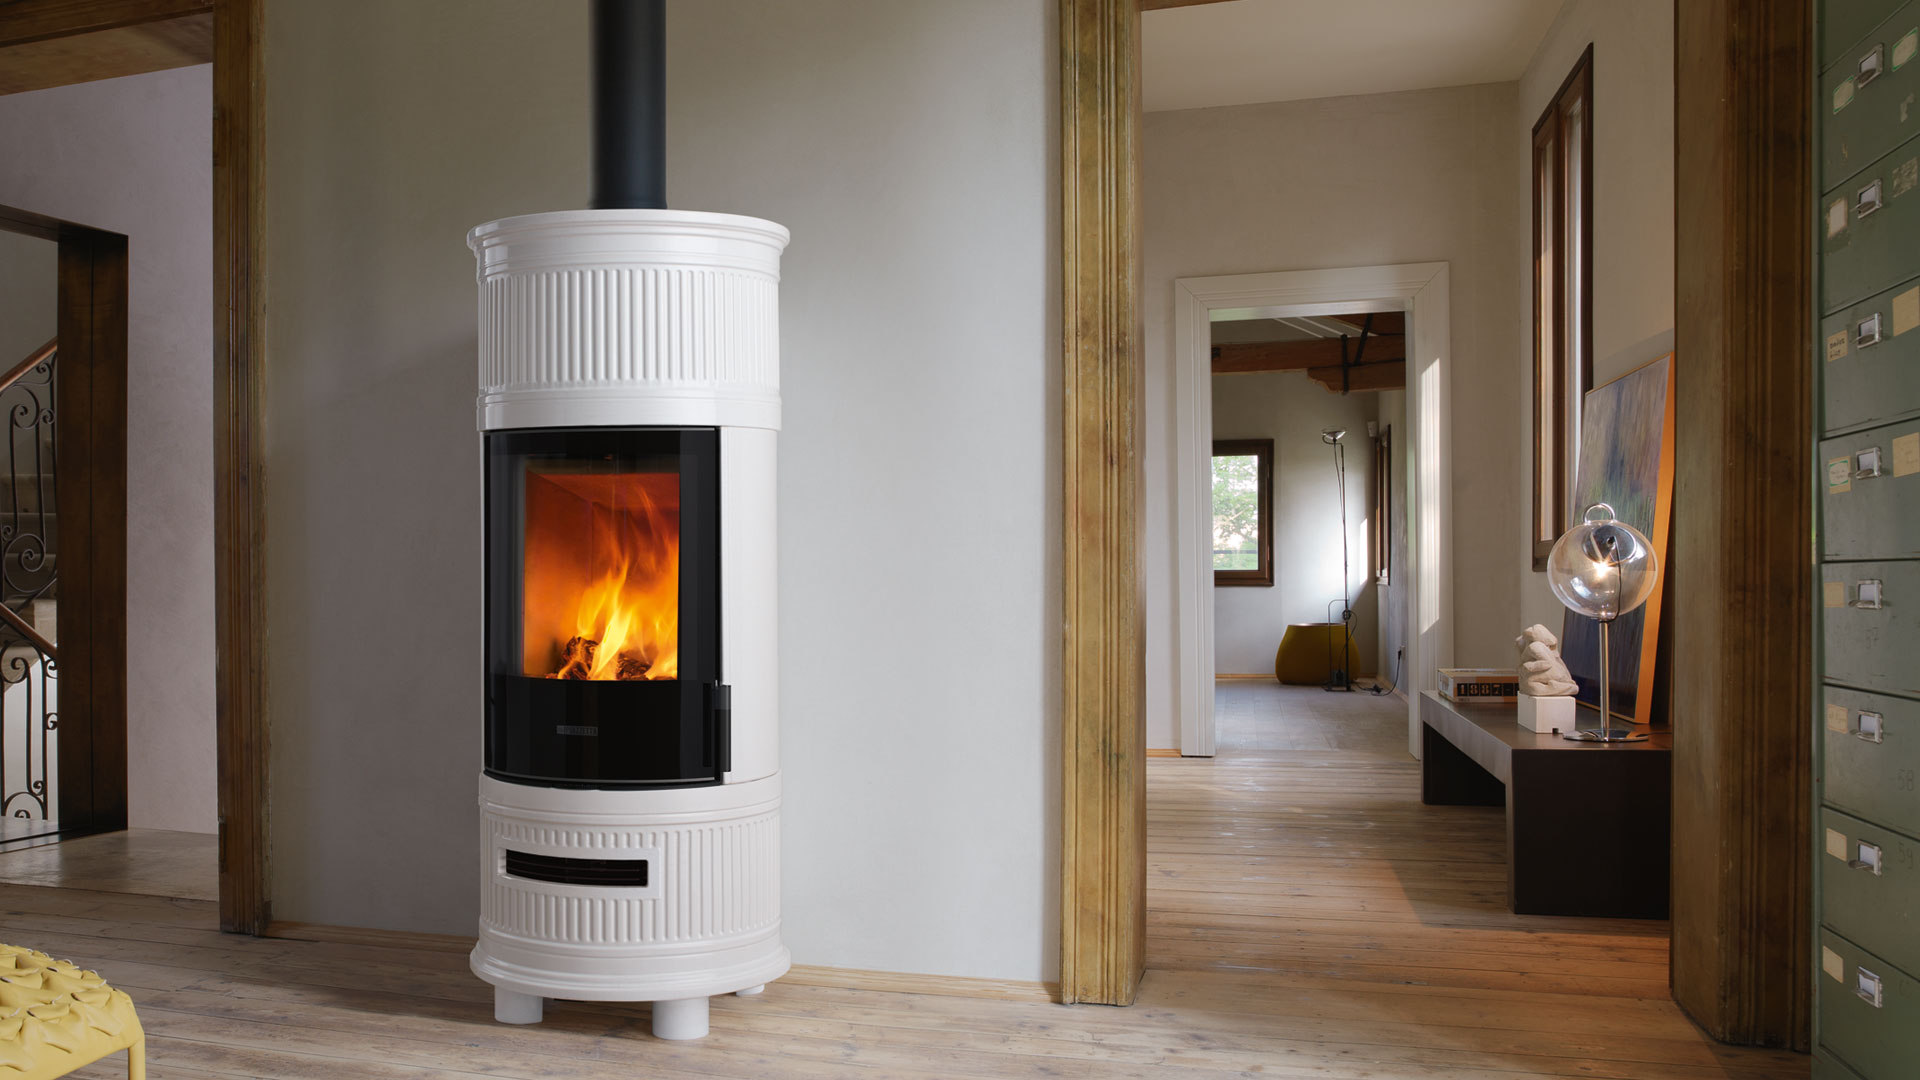 L Caminetto In Inglese Fireplaces And Stoves Piazzetta